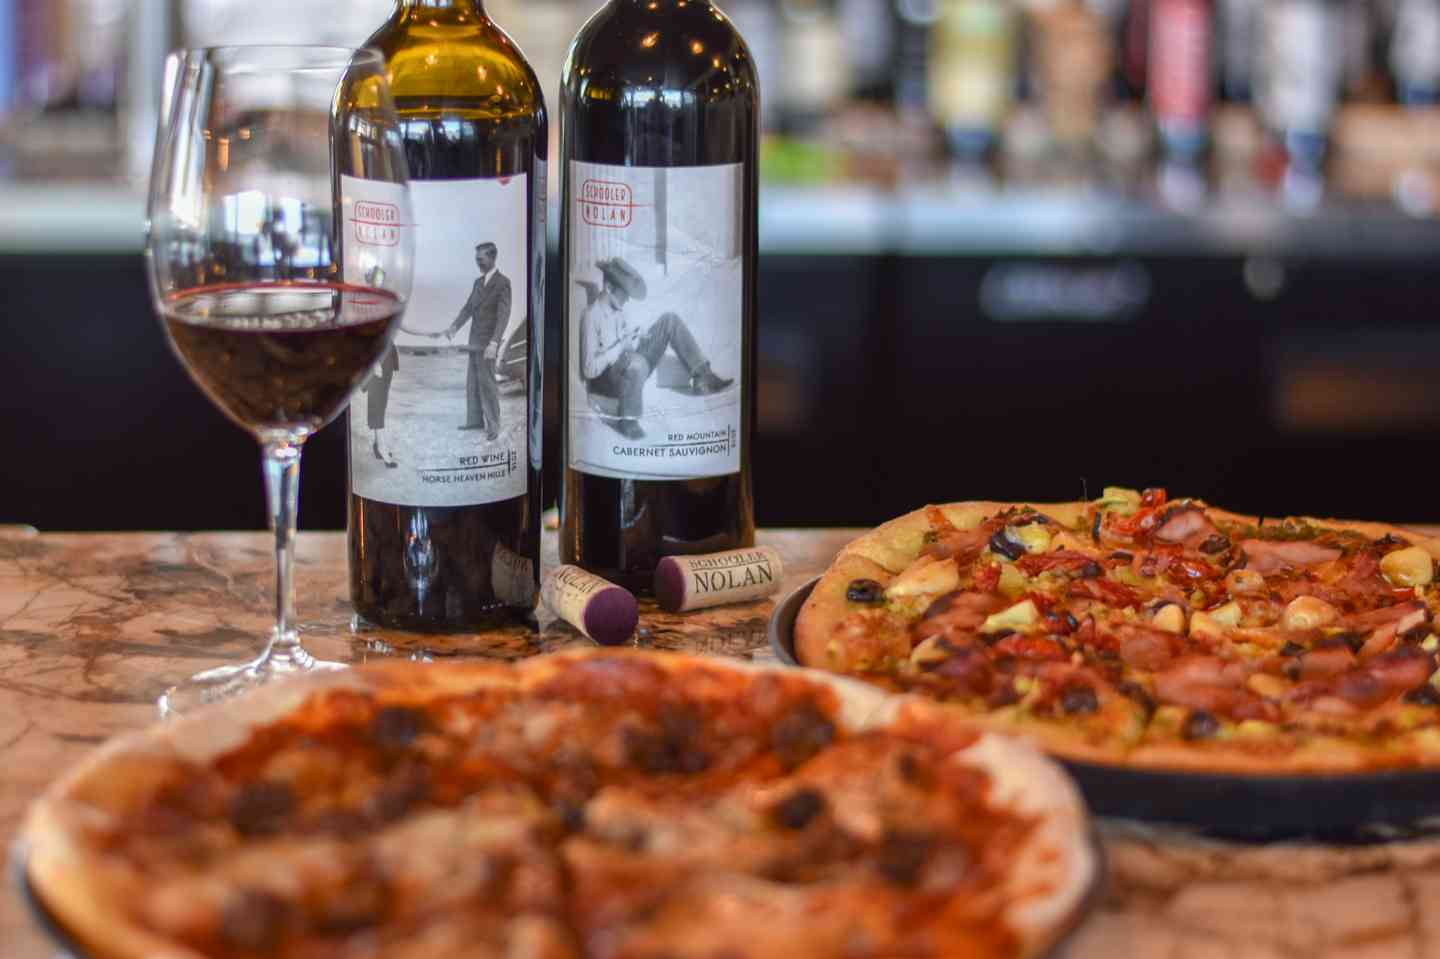 Nolan Wine and Pizza